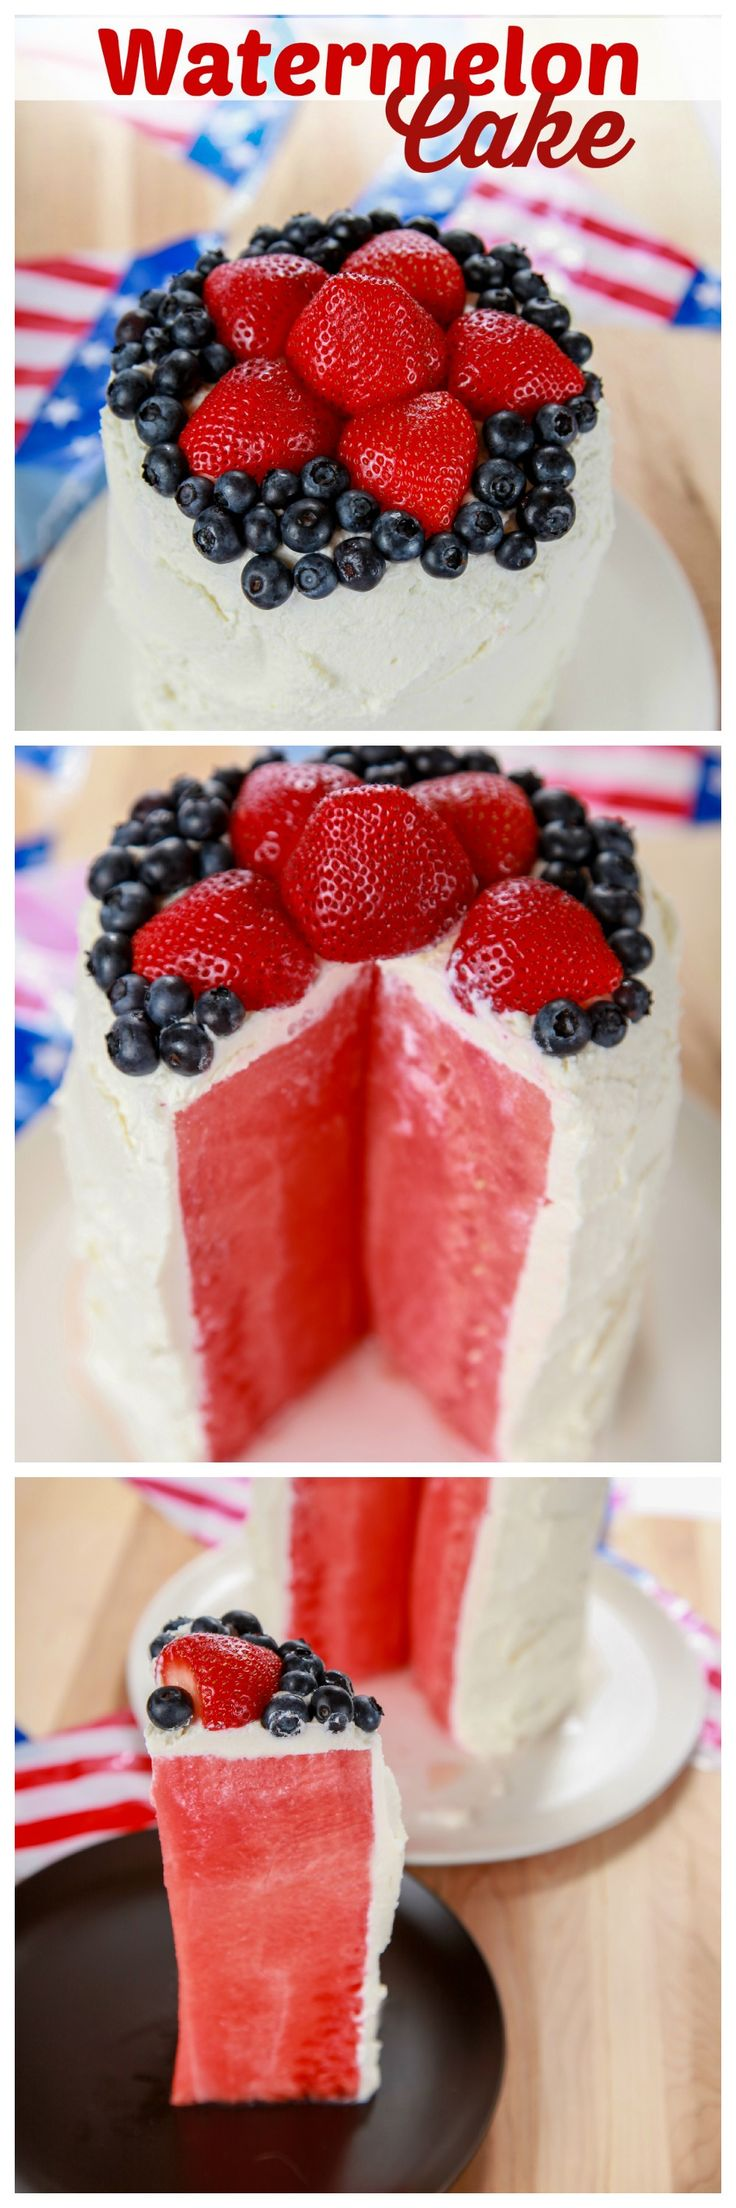 "Juicy watermelon ""cake""  topped with sweetened whipped cream and tart berries."